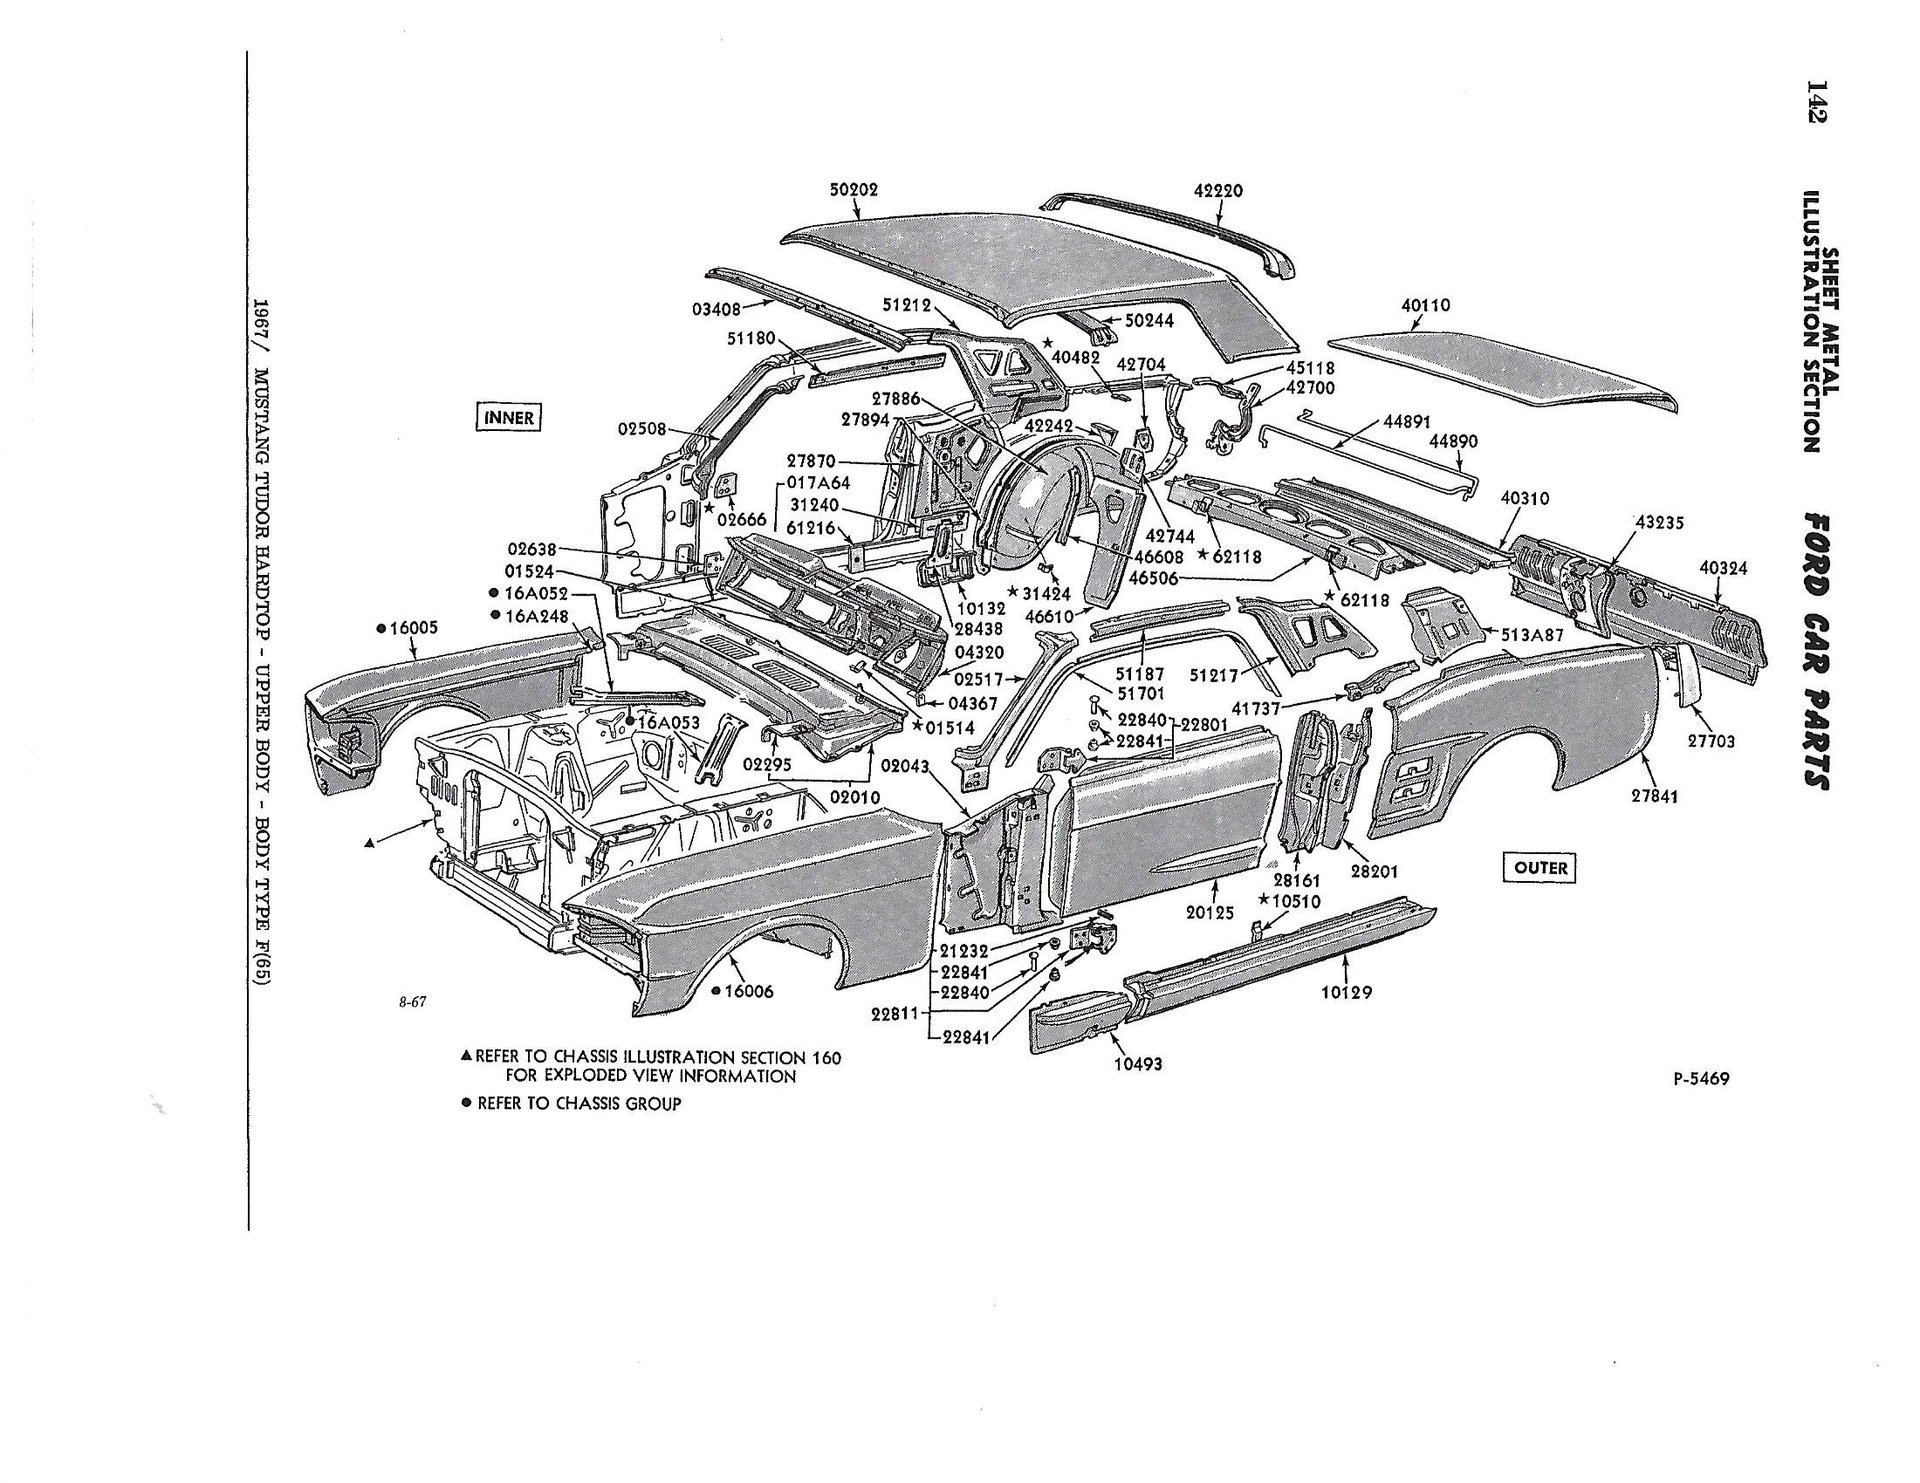 MPC Body Pages 142, 143 plus Text_0001.jpg